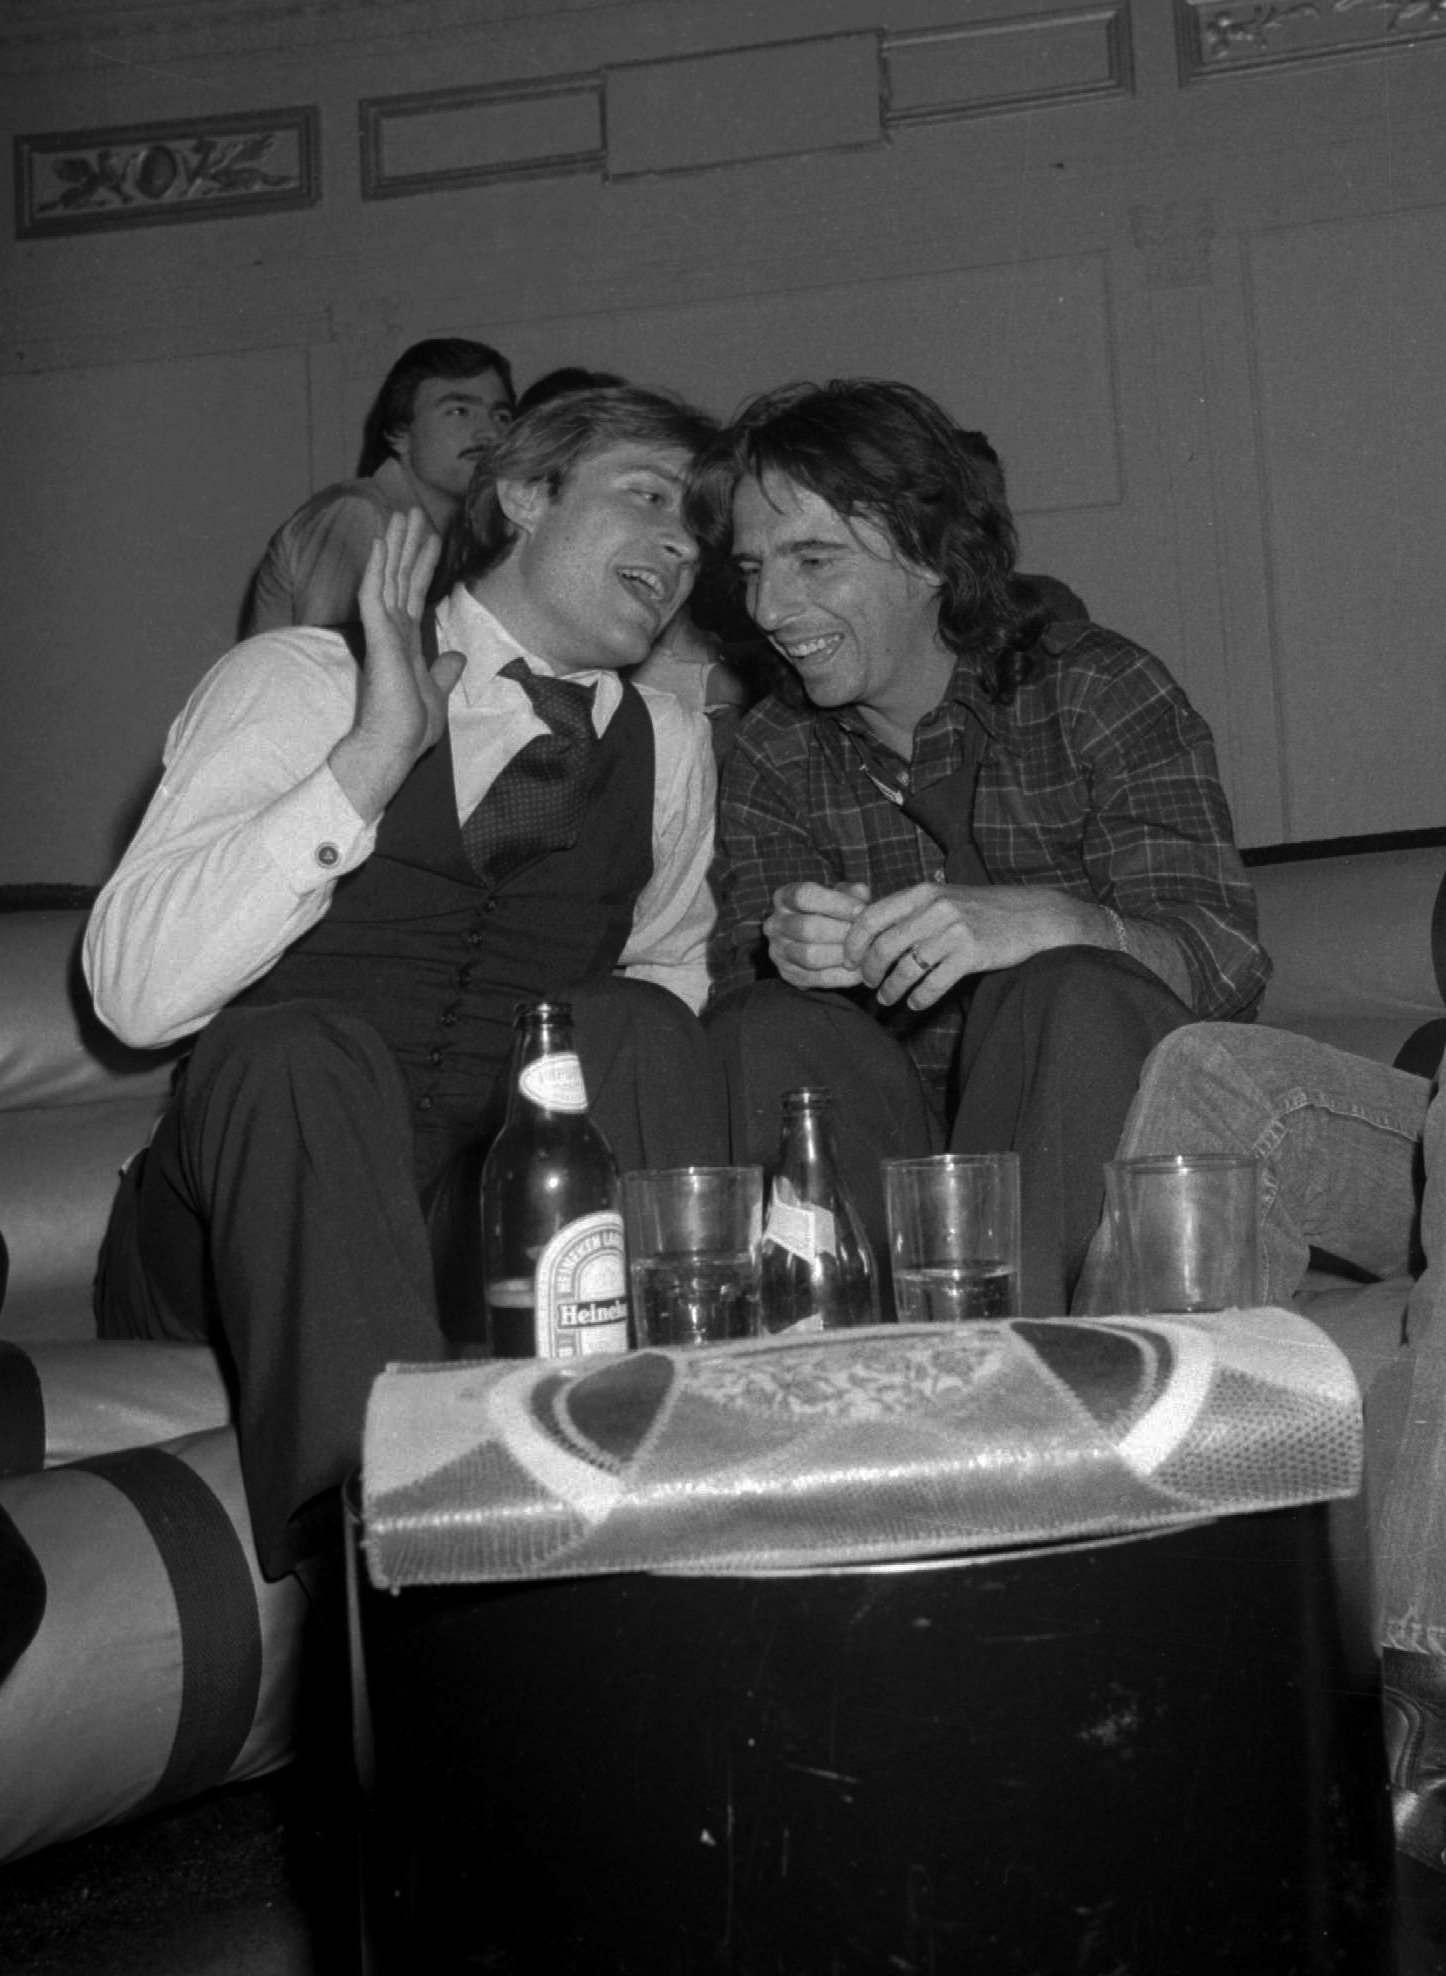 Jack Ford, left, son of former President Gerald Ford, talks with singer Alice Cooper at New York's Studio 54 on February 16, 1978. Twenty years later, Jack Ford s back on the national scene and he s helping plan another party. This summer's Republican National Convention in his adopted hometown of San Diego.(AP Photo) Ref #: PA.4933766   Date: 16/02/1978